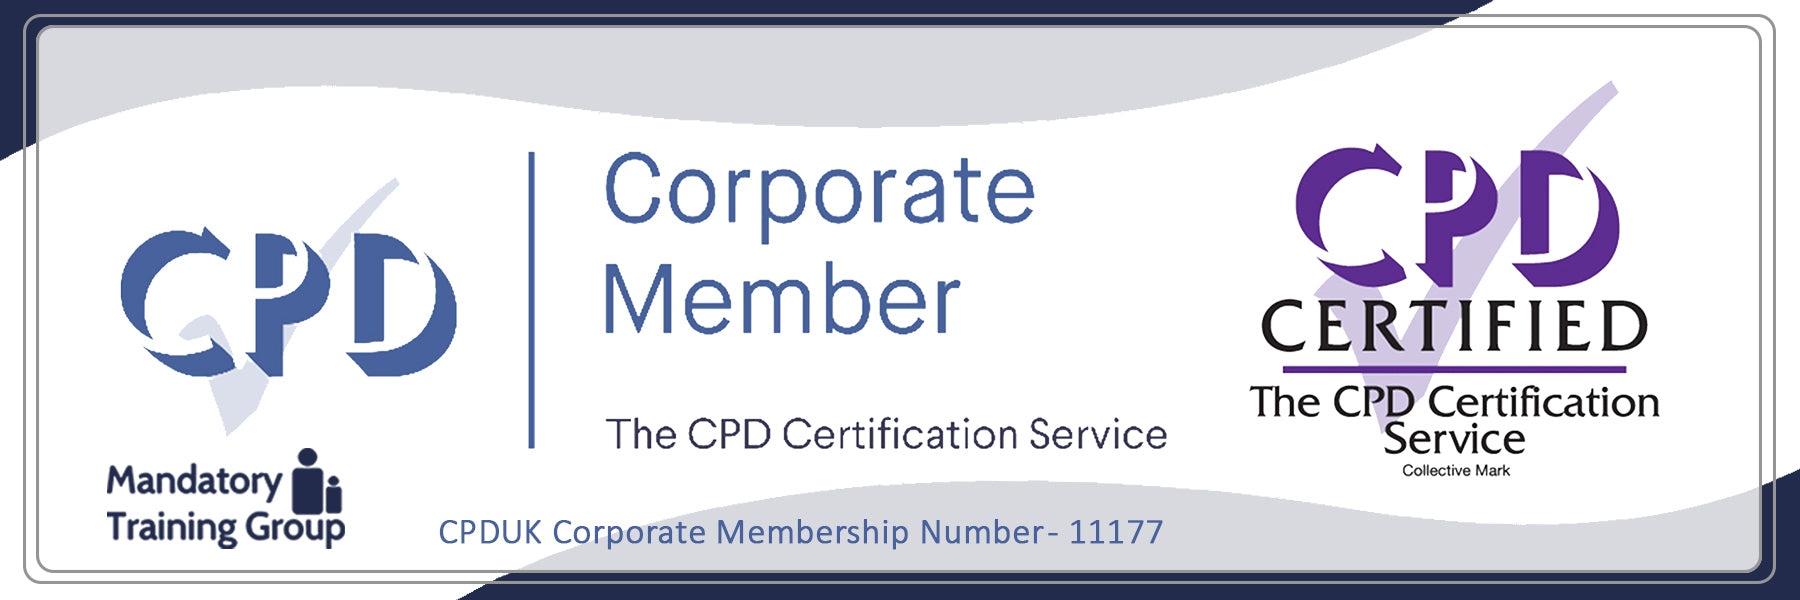 Care Certificate Standard 5 - Train the Trainer Course + Trainer Pack - - Online CPD Course - The Mandatory Training Group UK - --------------------